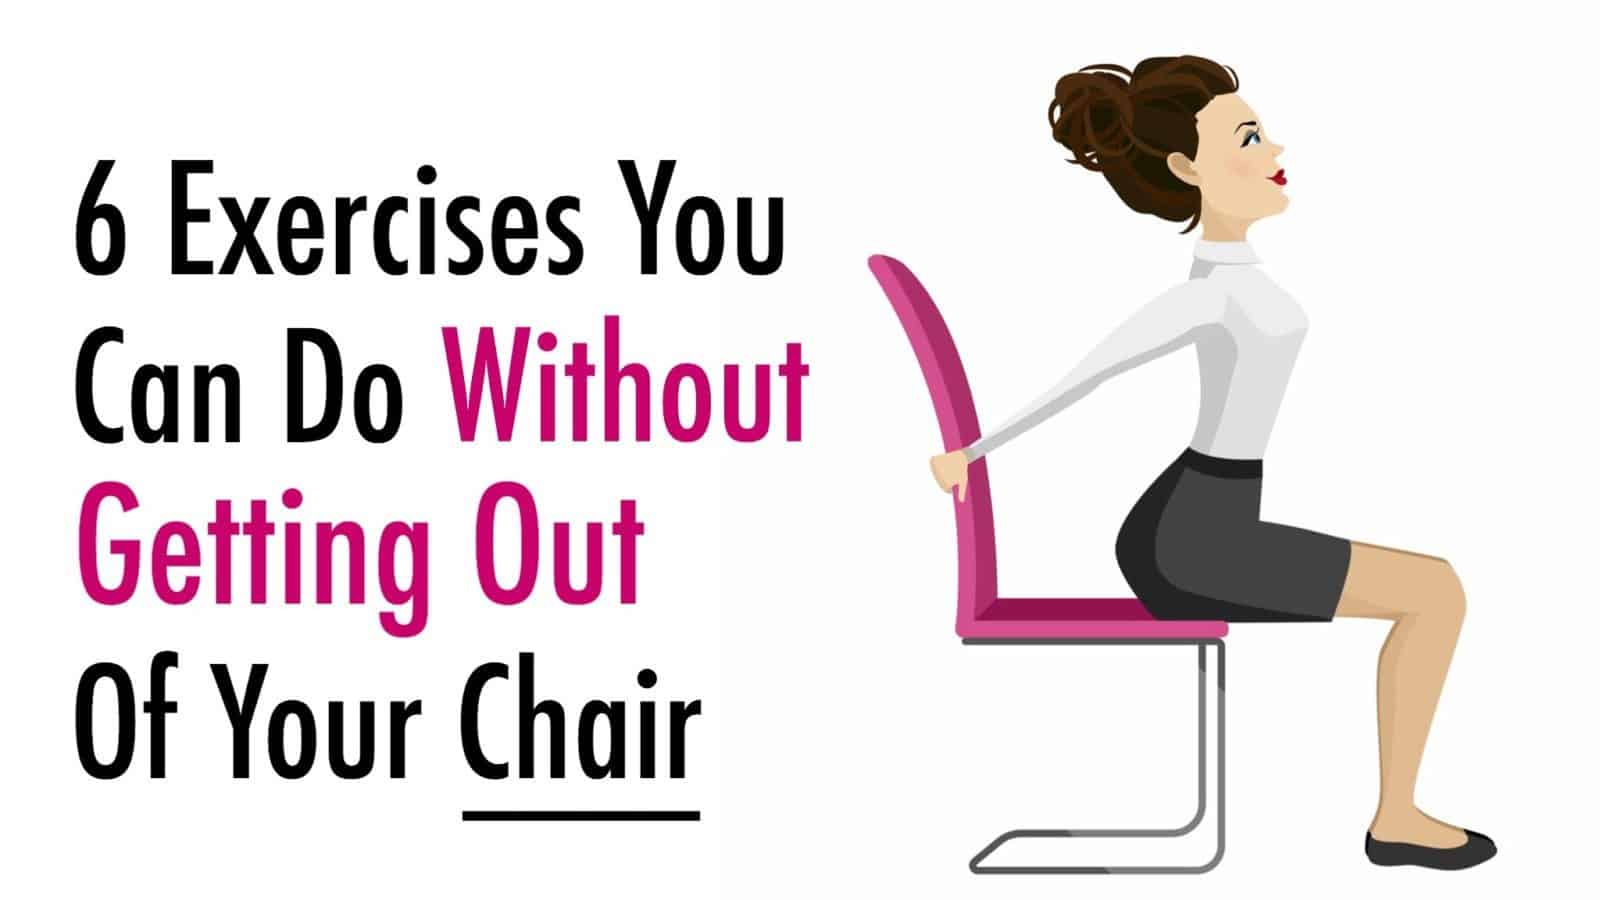 Chair Exercises For Obese 6 Exercises You Can Do Without Getting Out Of Your Chair